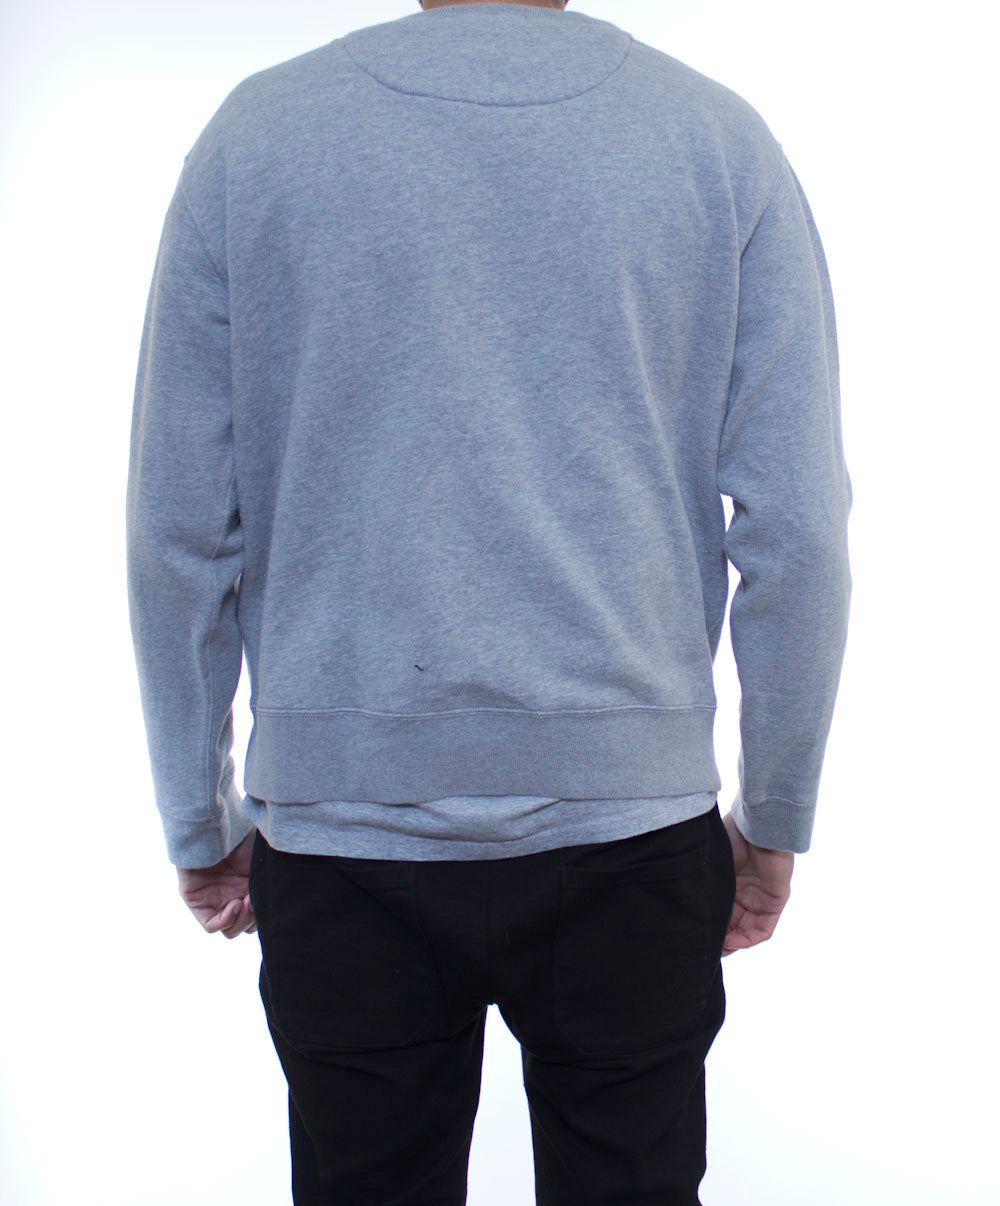 Speck Ralph Lauren Sweater